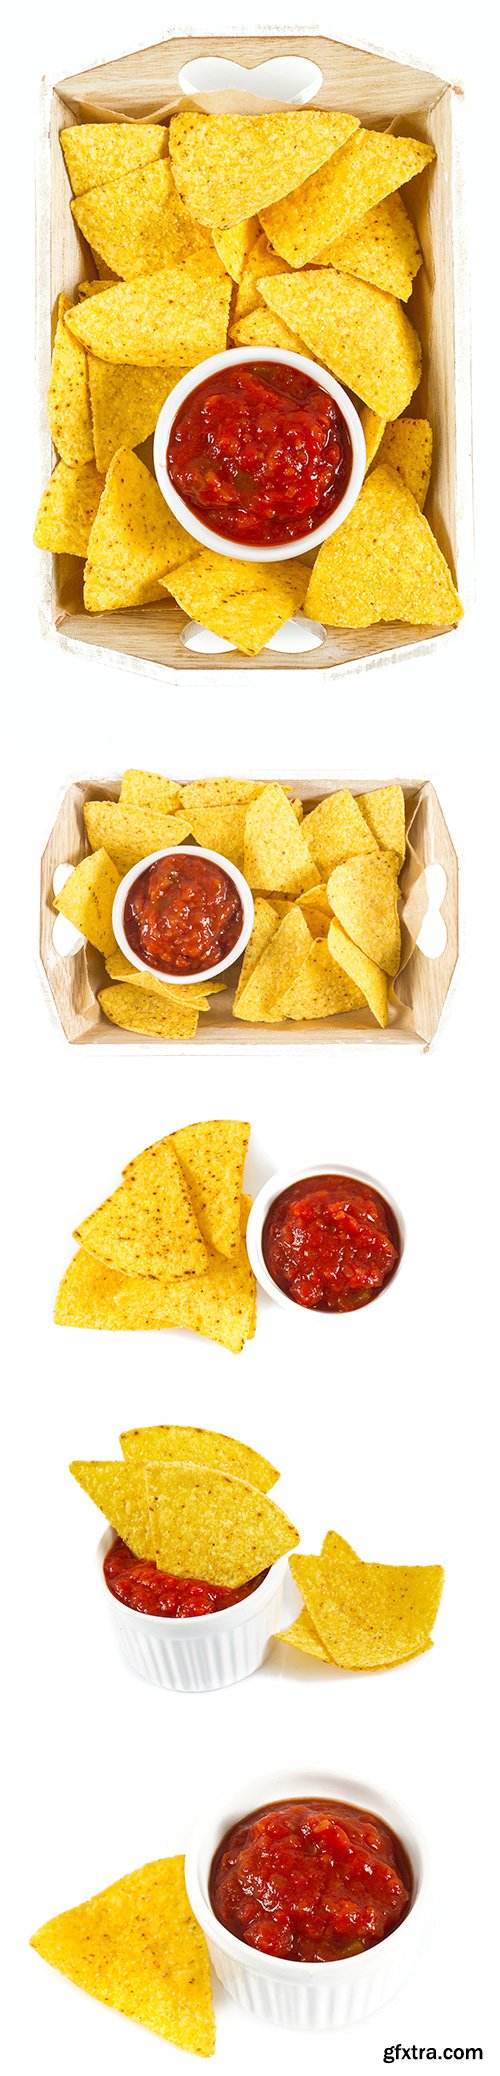 Nachos And Tomato Dip Isolated - 5xJPGs